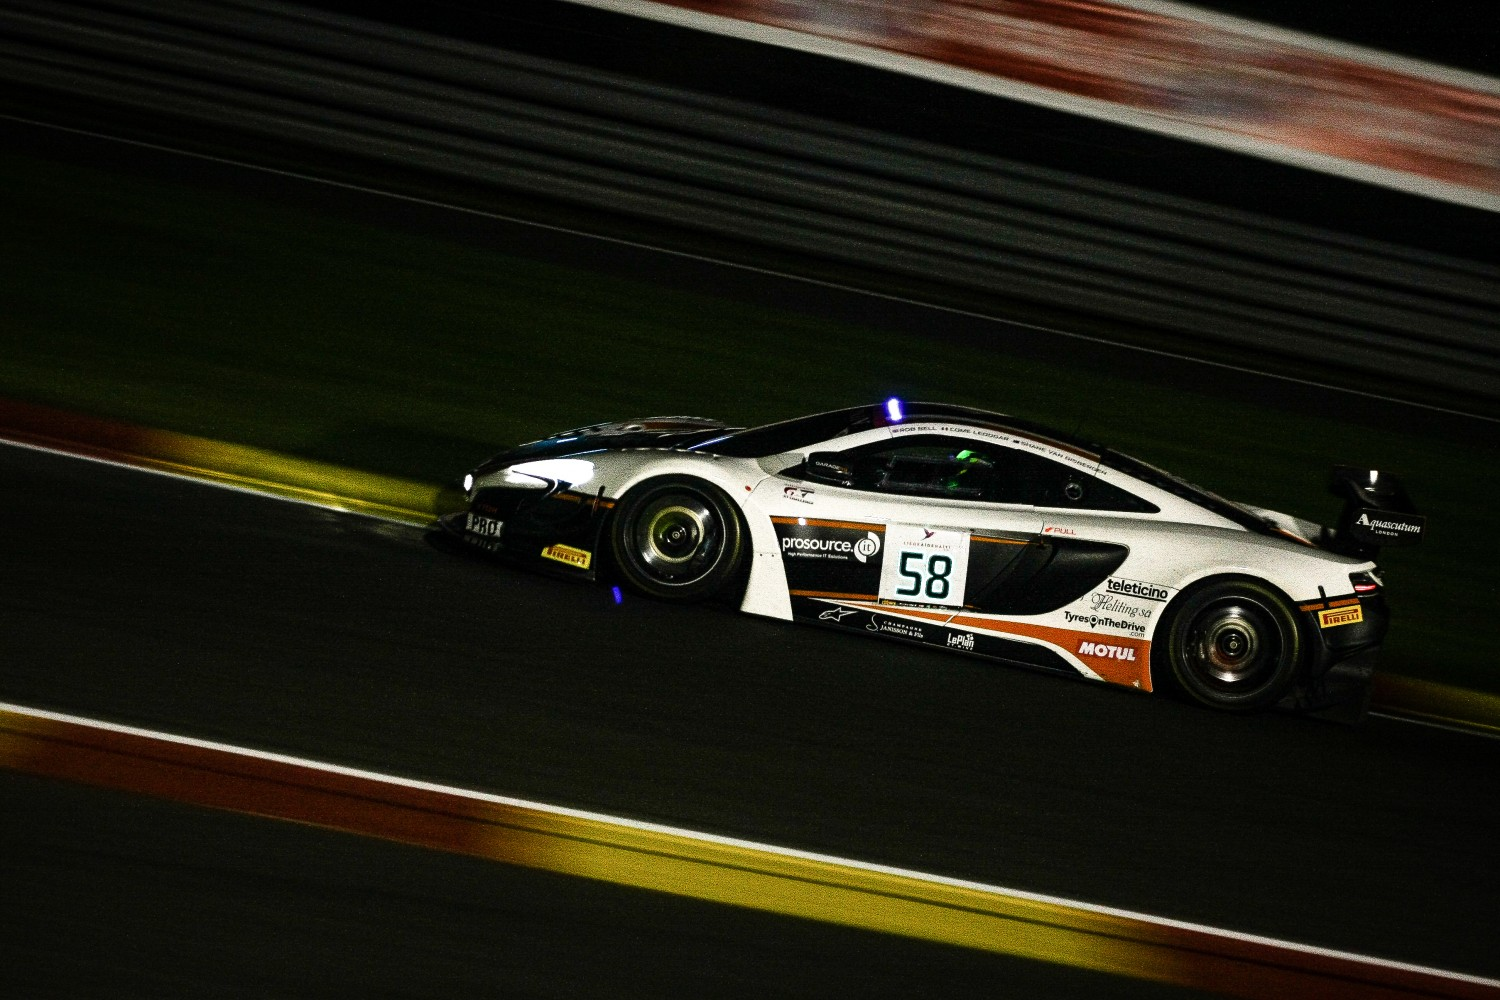 Shane Van Gisbergen fastest in qualifying for the Total 24 Hours of Spa